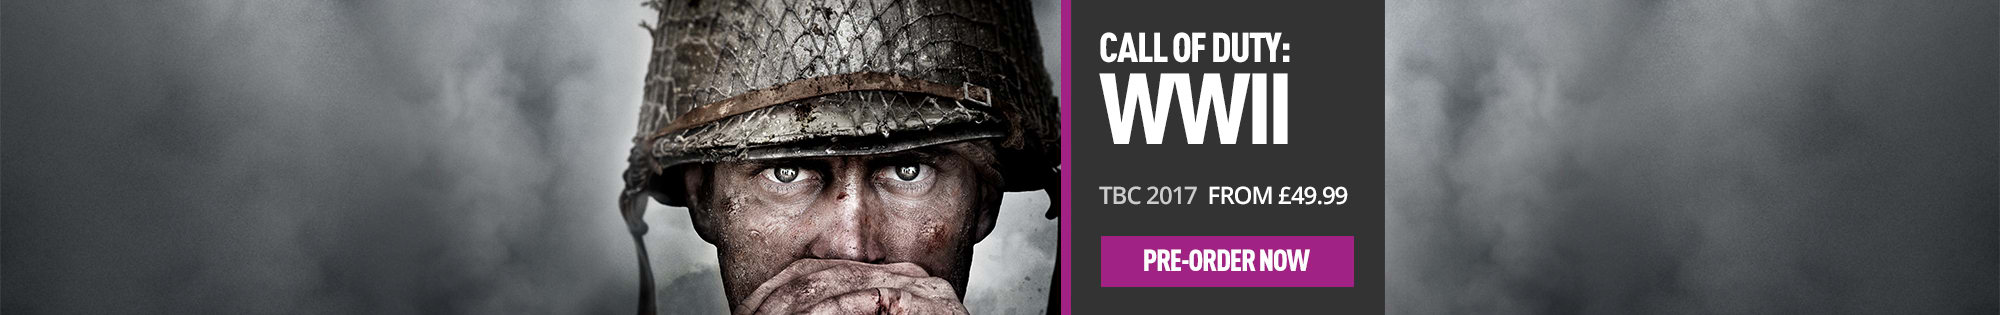 Call of Duty: WWII for PlayStation 4, Xbox One and PC